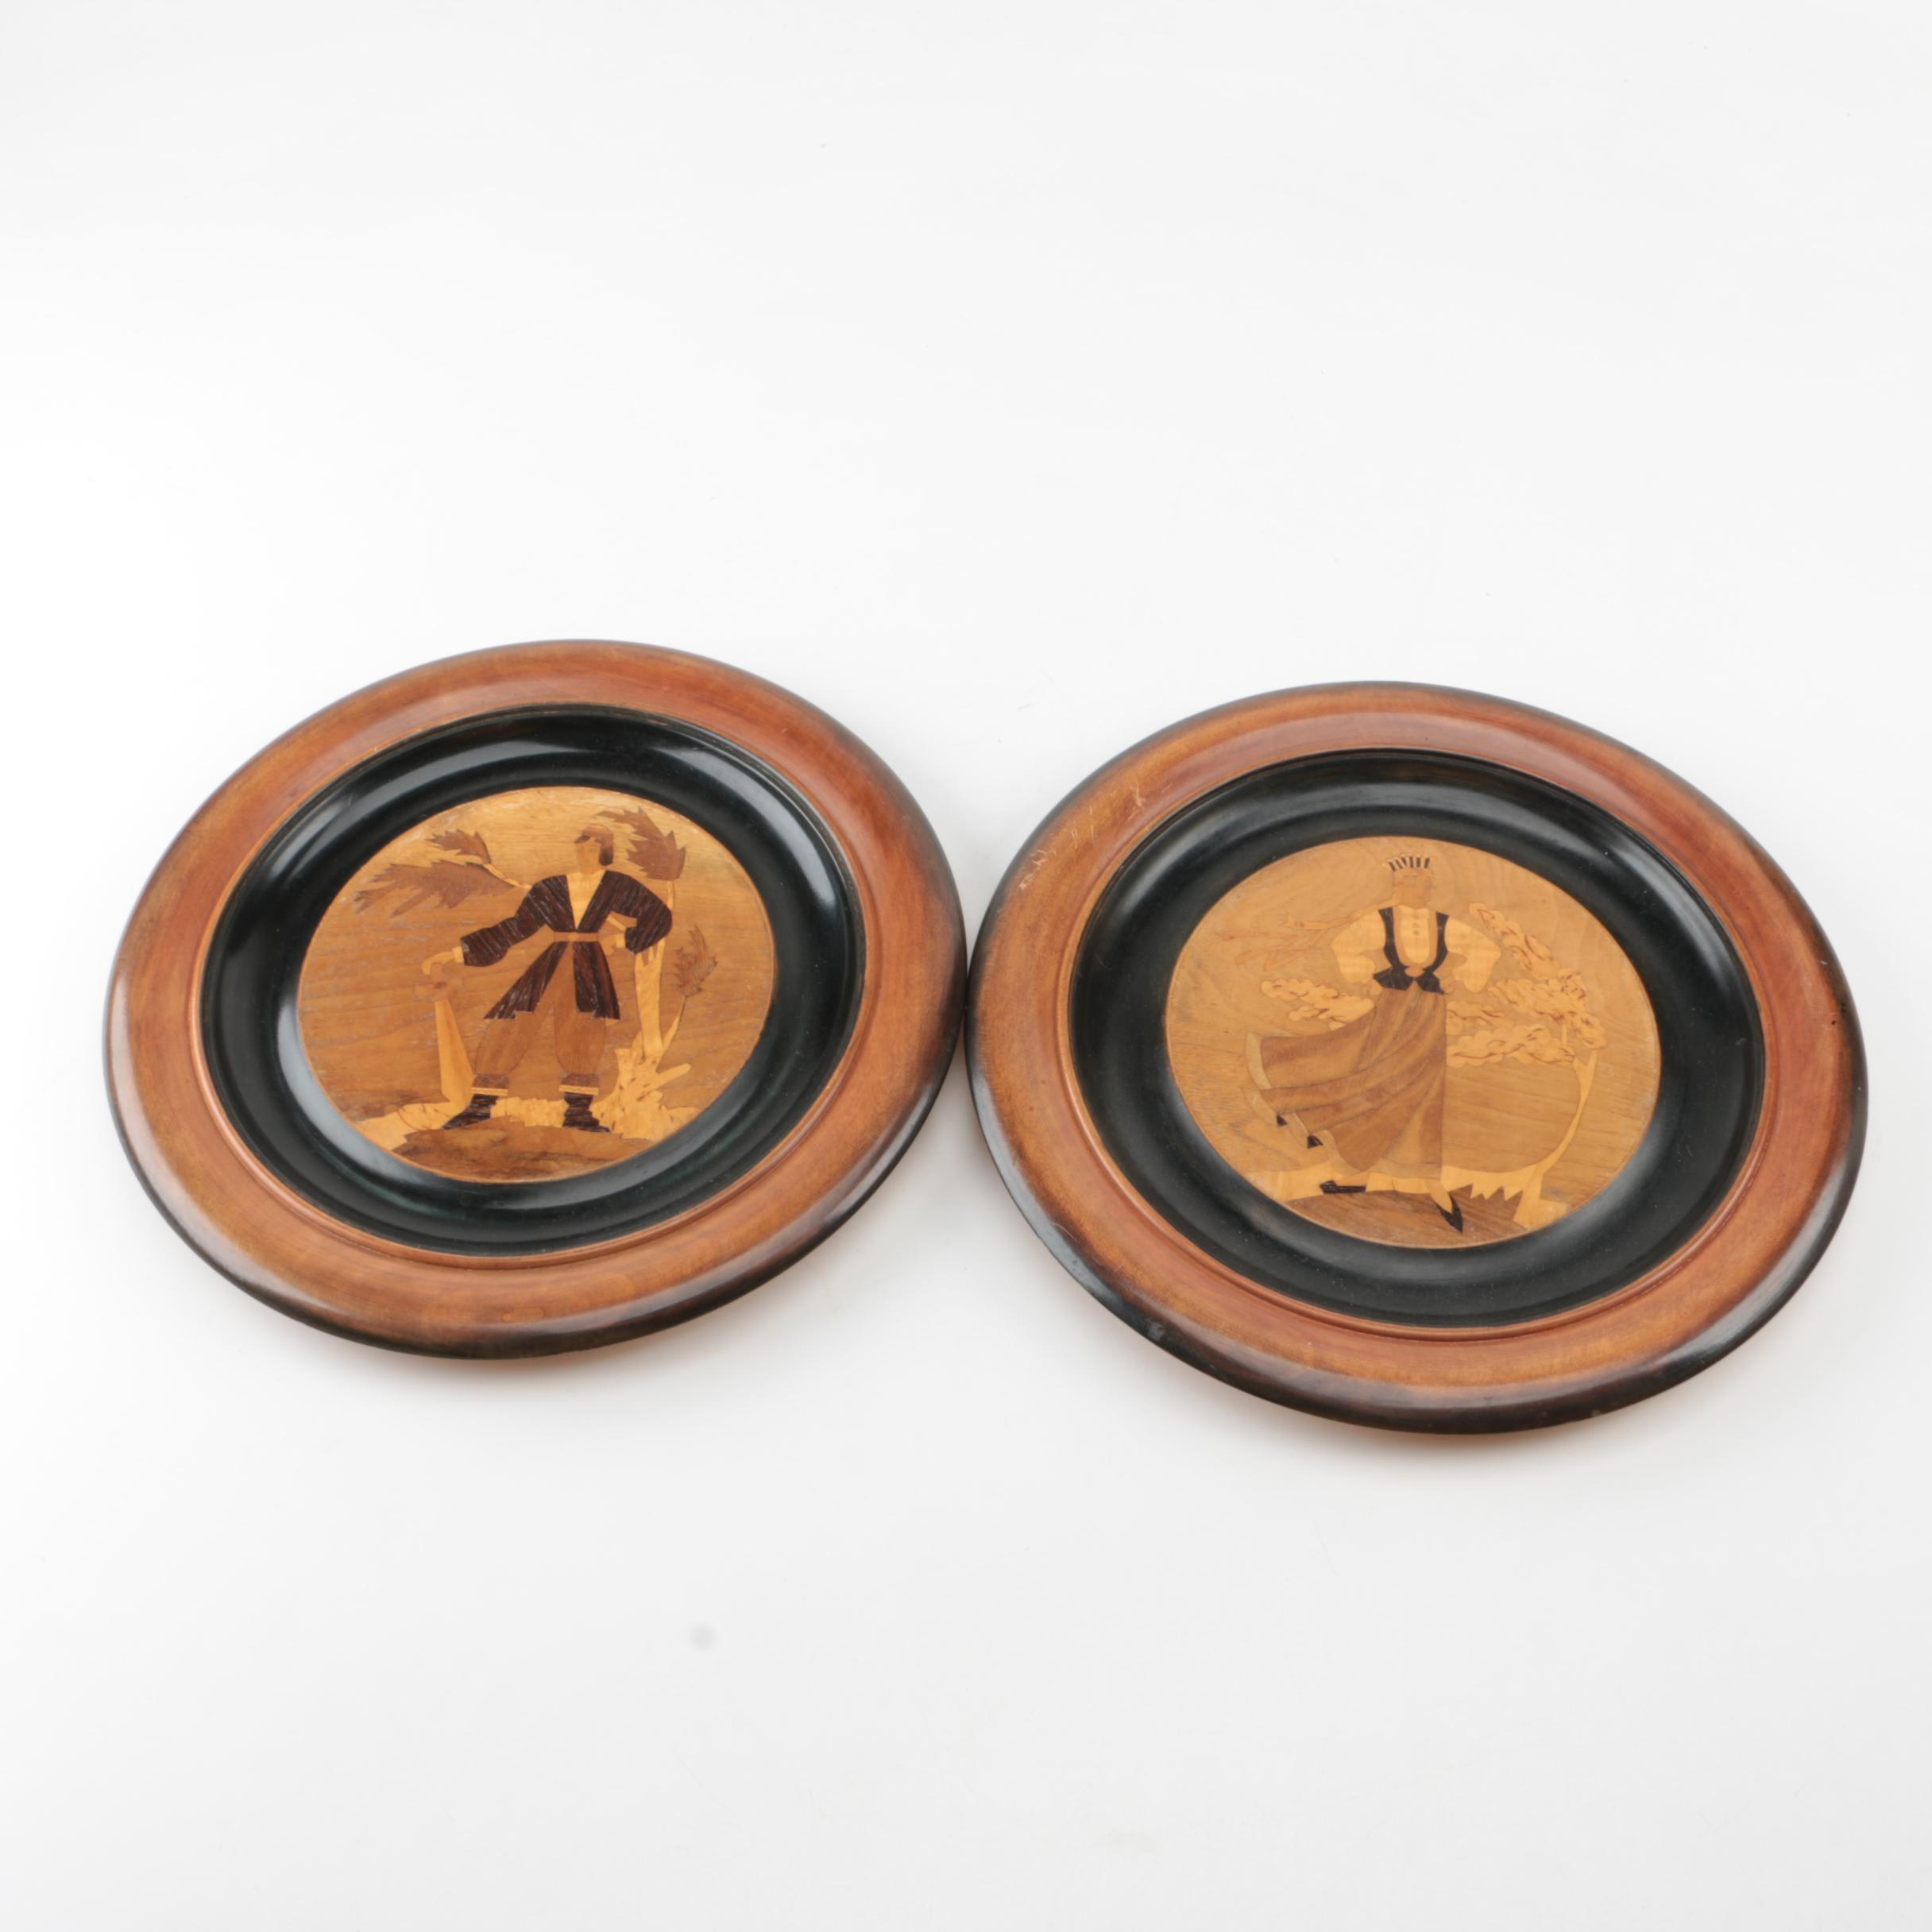 Decorative Wooden Plates with Inlaid Figures ... & Decorative Wooden Plates with Inlaid Figures : EBTH